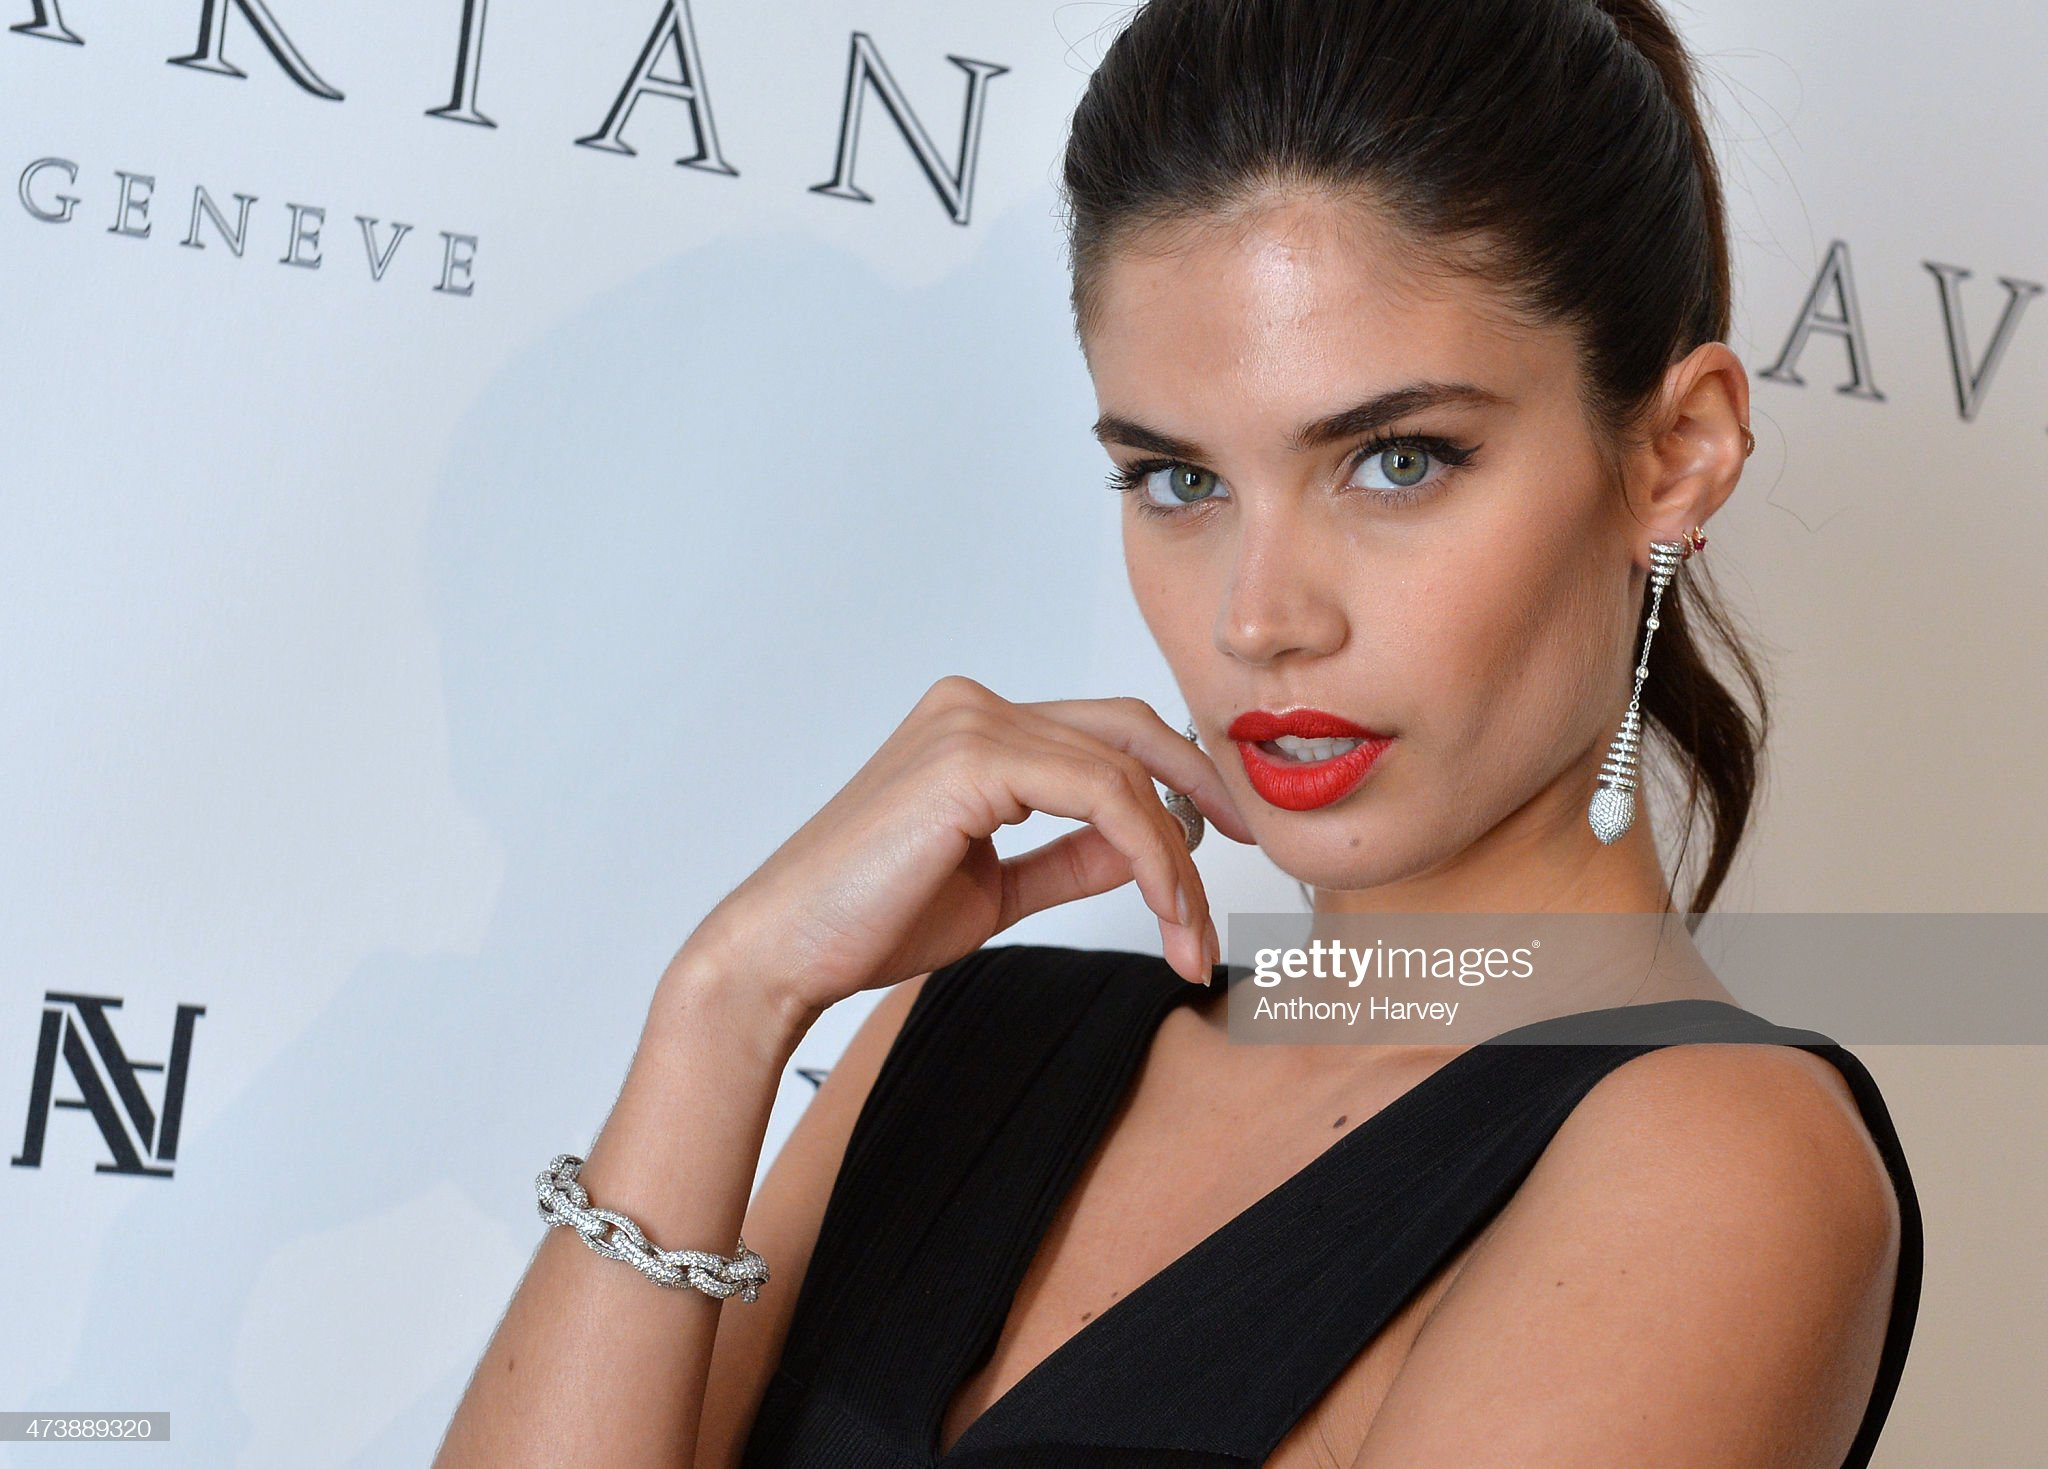 Ojos verdes - Famosas y famosos con los ojos de color VERDE Sara-sampaio-visits-the-avakian-suite-during-the-68th-annual-cannes-picture-id473889320?s=2048x2048